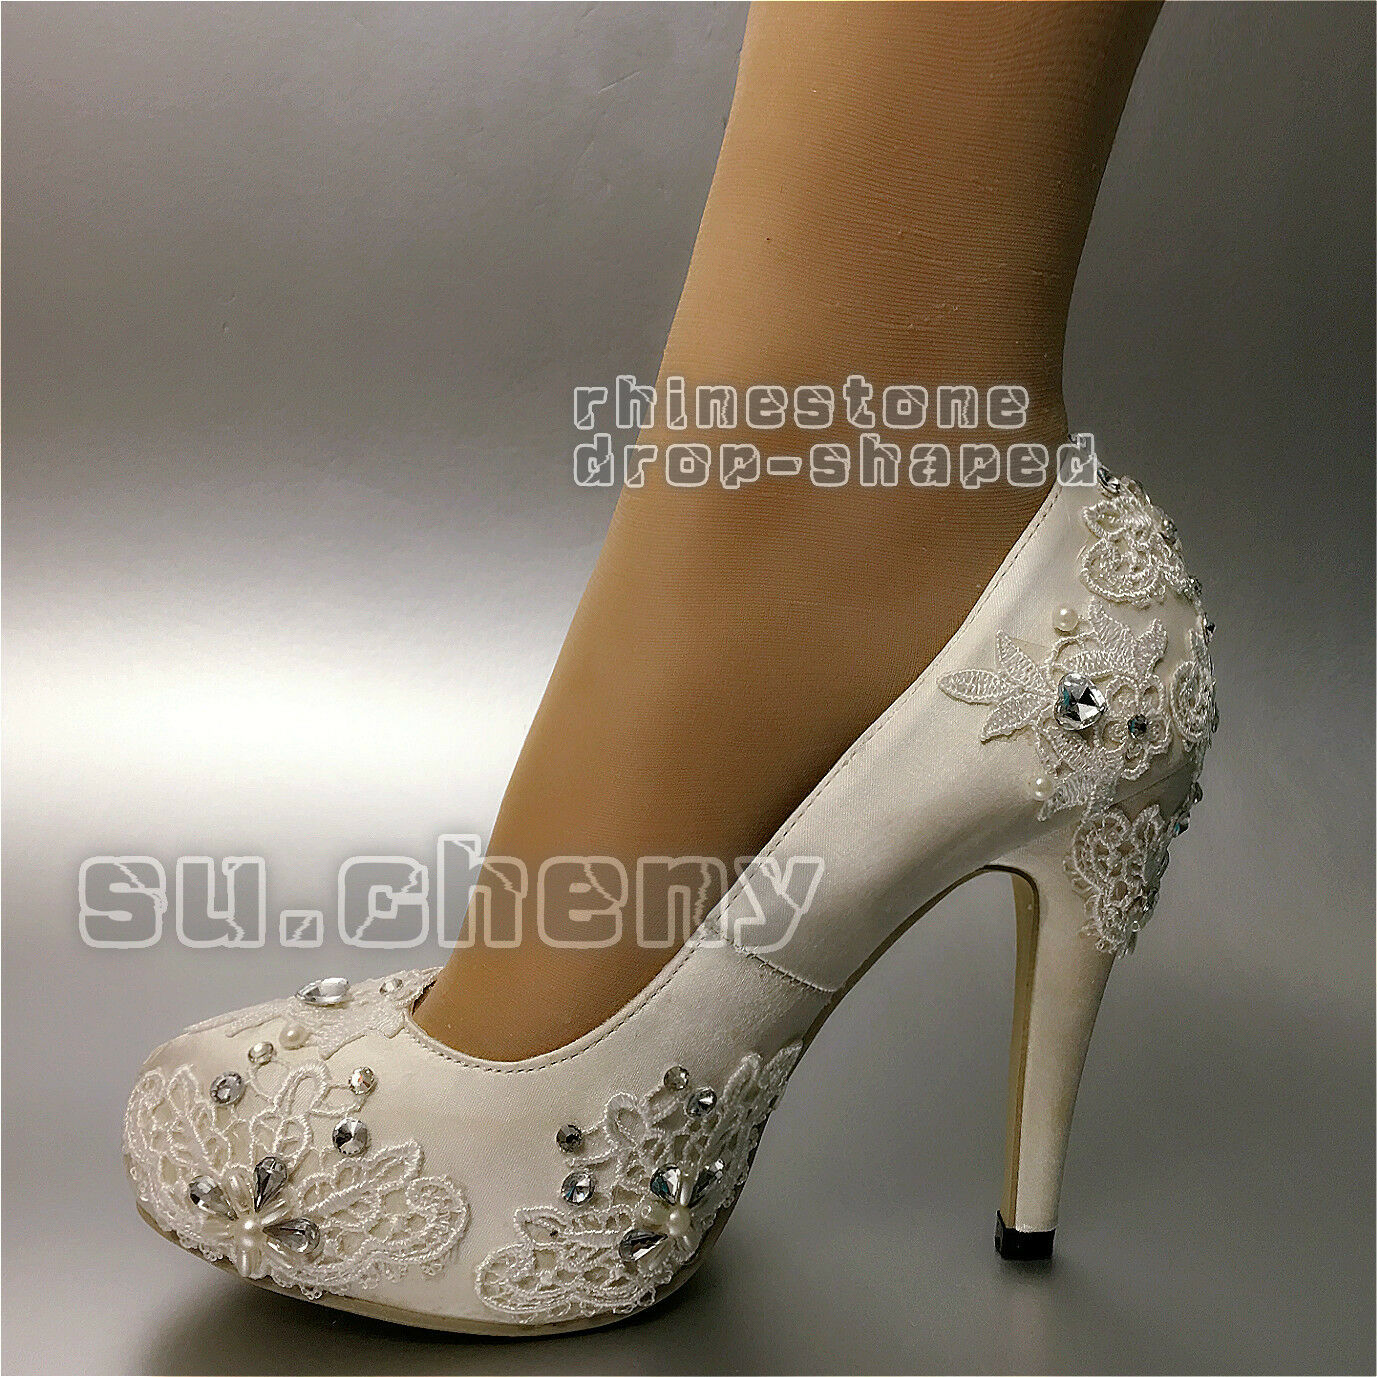 online economico Su.cheny 3  4  heel bianca ivory satin lace lace lace close toe anklet Wedding Bridal scarpe  alta qualità genuina